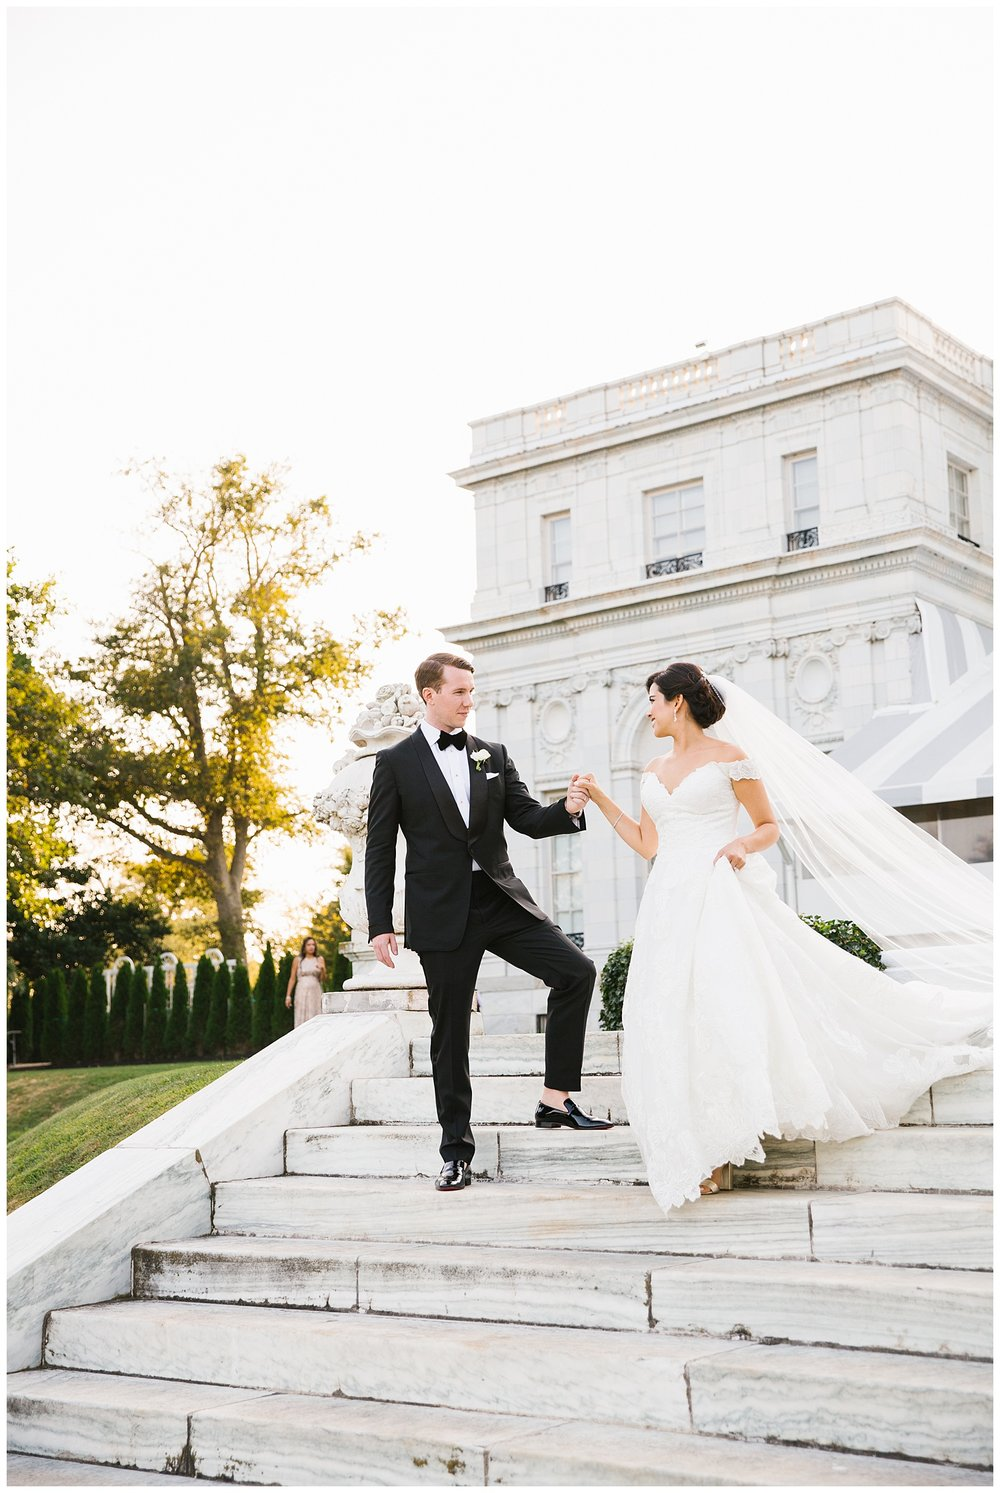 Stephen_Nathalie_Rosecliff_Mansion_Wedding_020.jpeg